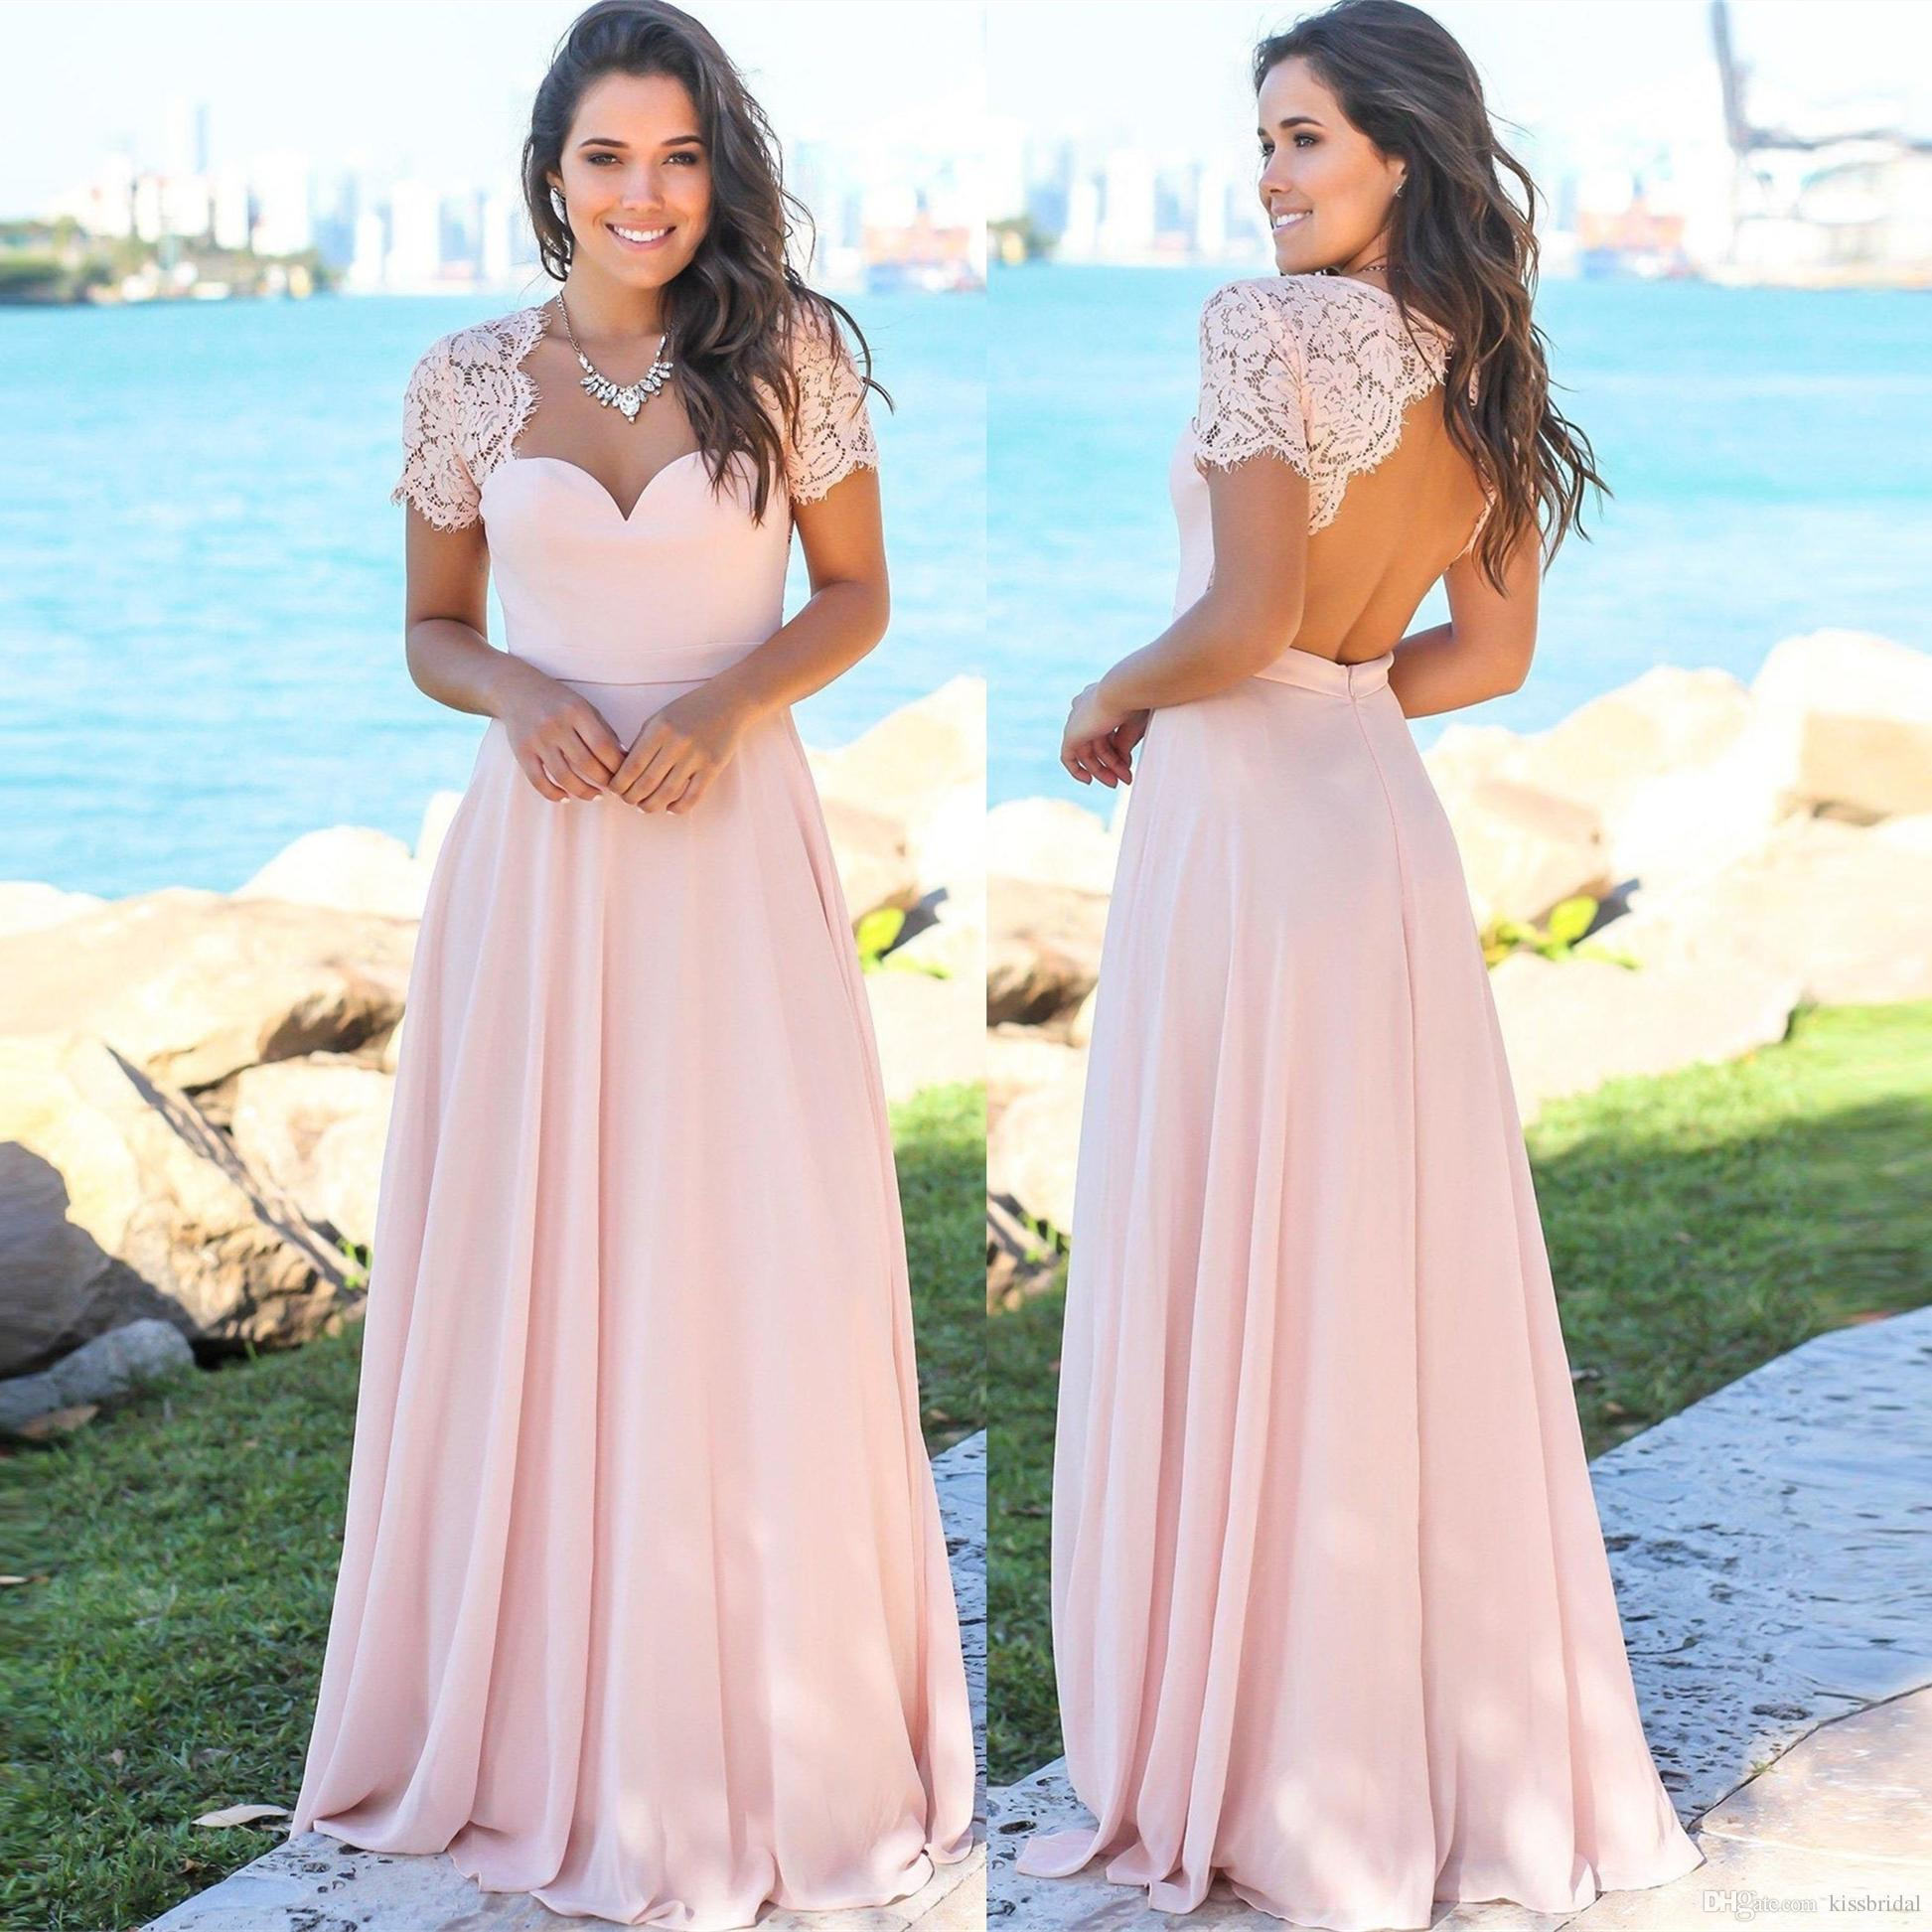 a6e5a5d3b02b Short Sleeve Bridesmaid Dresses Cheap 2019 Column Backless Lace Chiffon  Long Pink Formal Gowns Wedding Guest Prom Ball Party Dress Charcoal  Bridesmaid ...